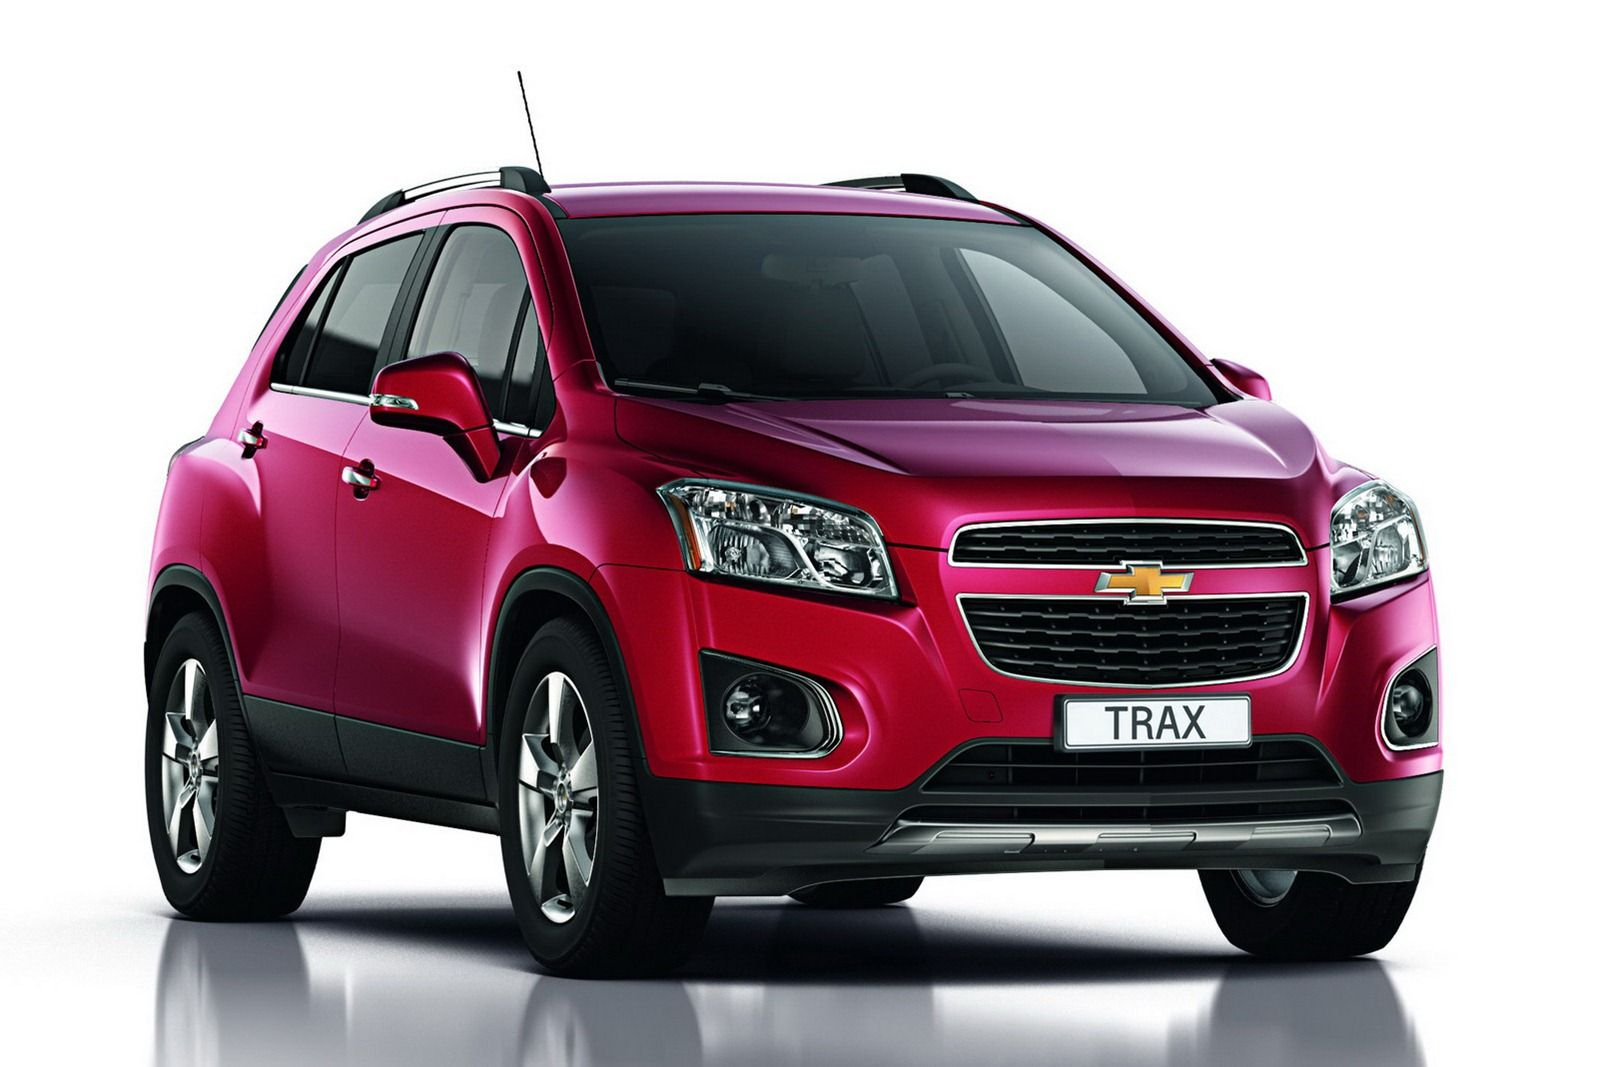 2012 Paris Motor Show Preview 2013 Chevrolet Trax Gabetumblr Chevrolet Trax Small Suv Chevrolet